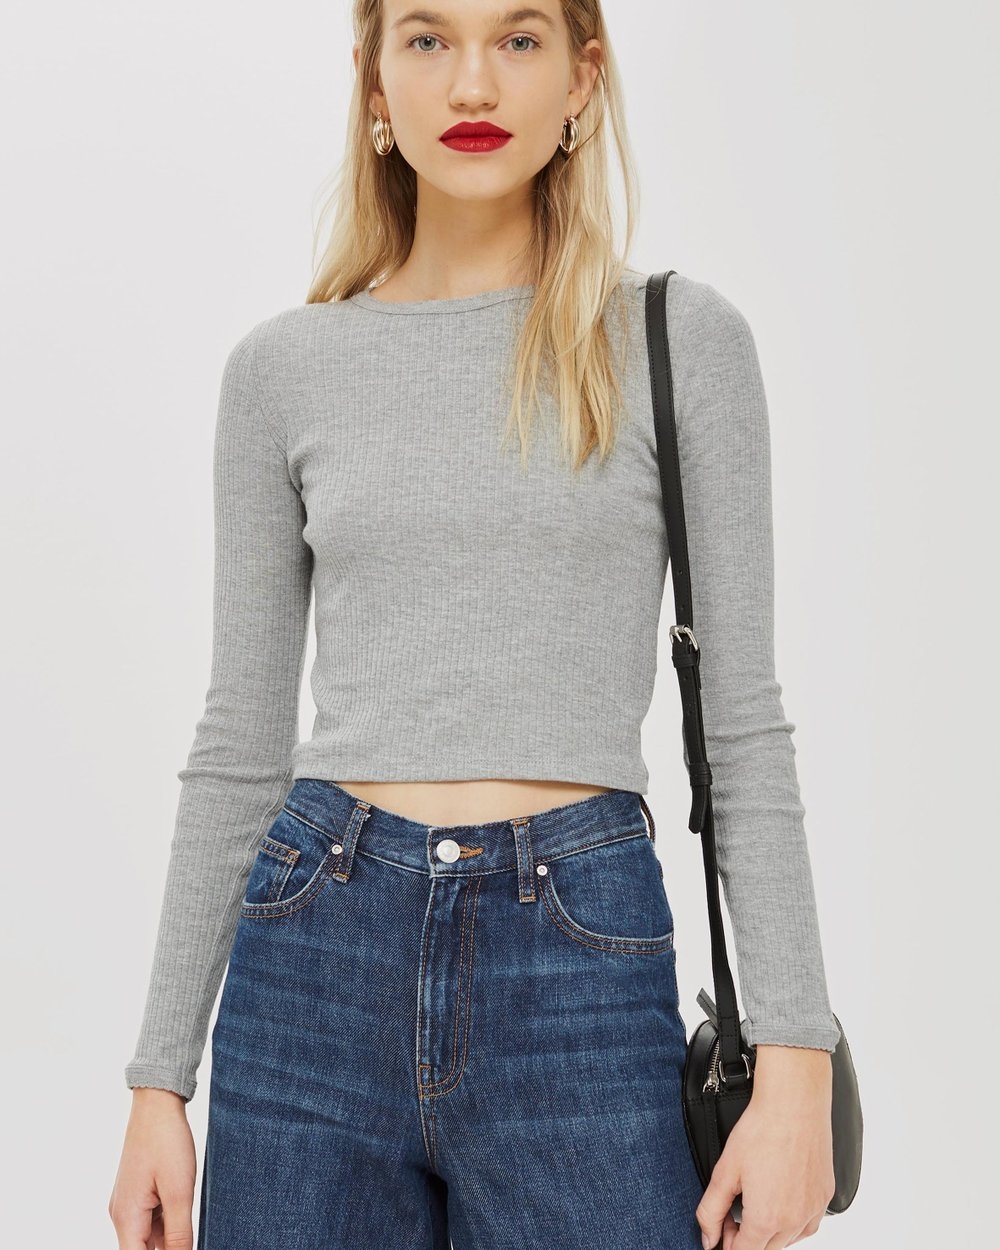 802378537f4 Long Sleeve Scallop T-Shirt by TOPSHOP Online